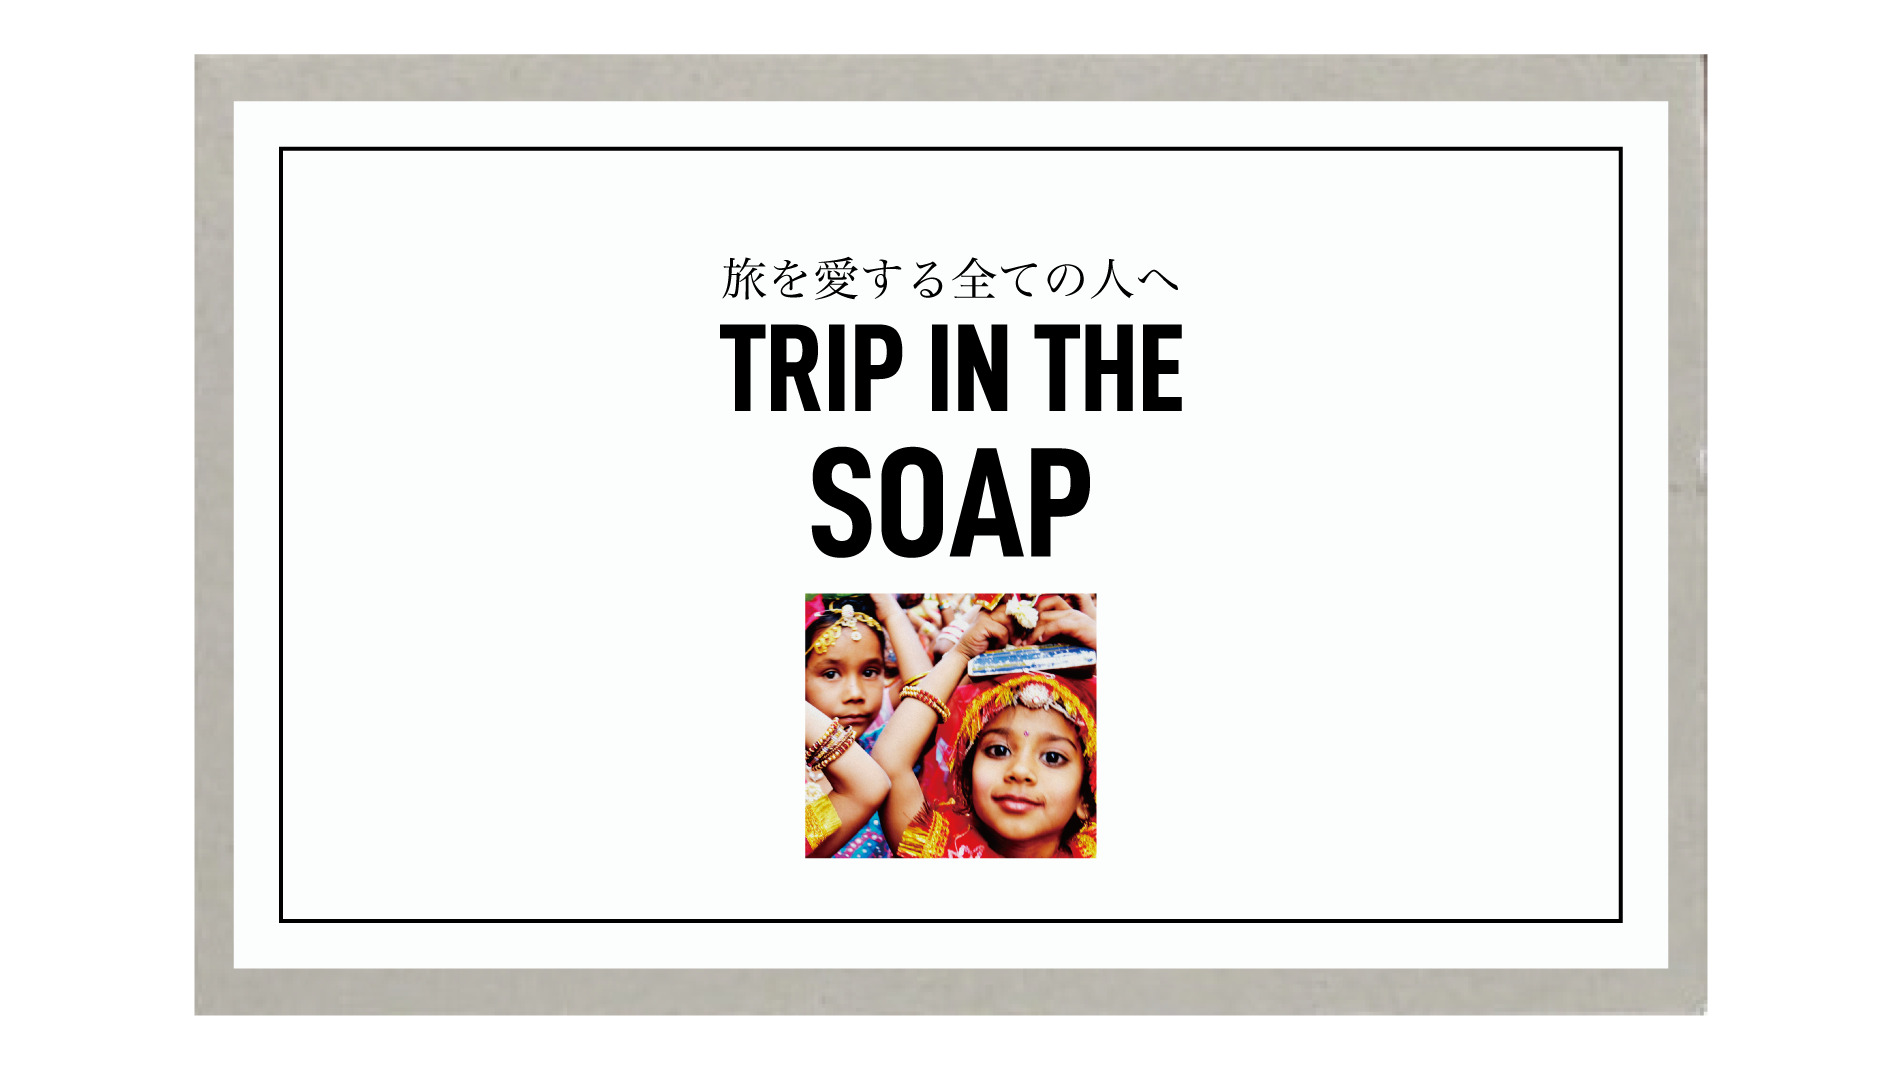 TRIP IN THE SOAP